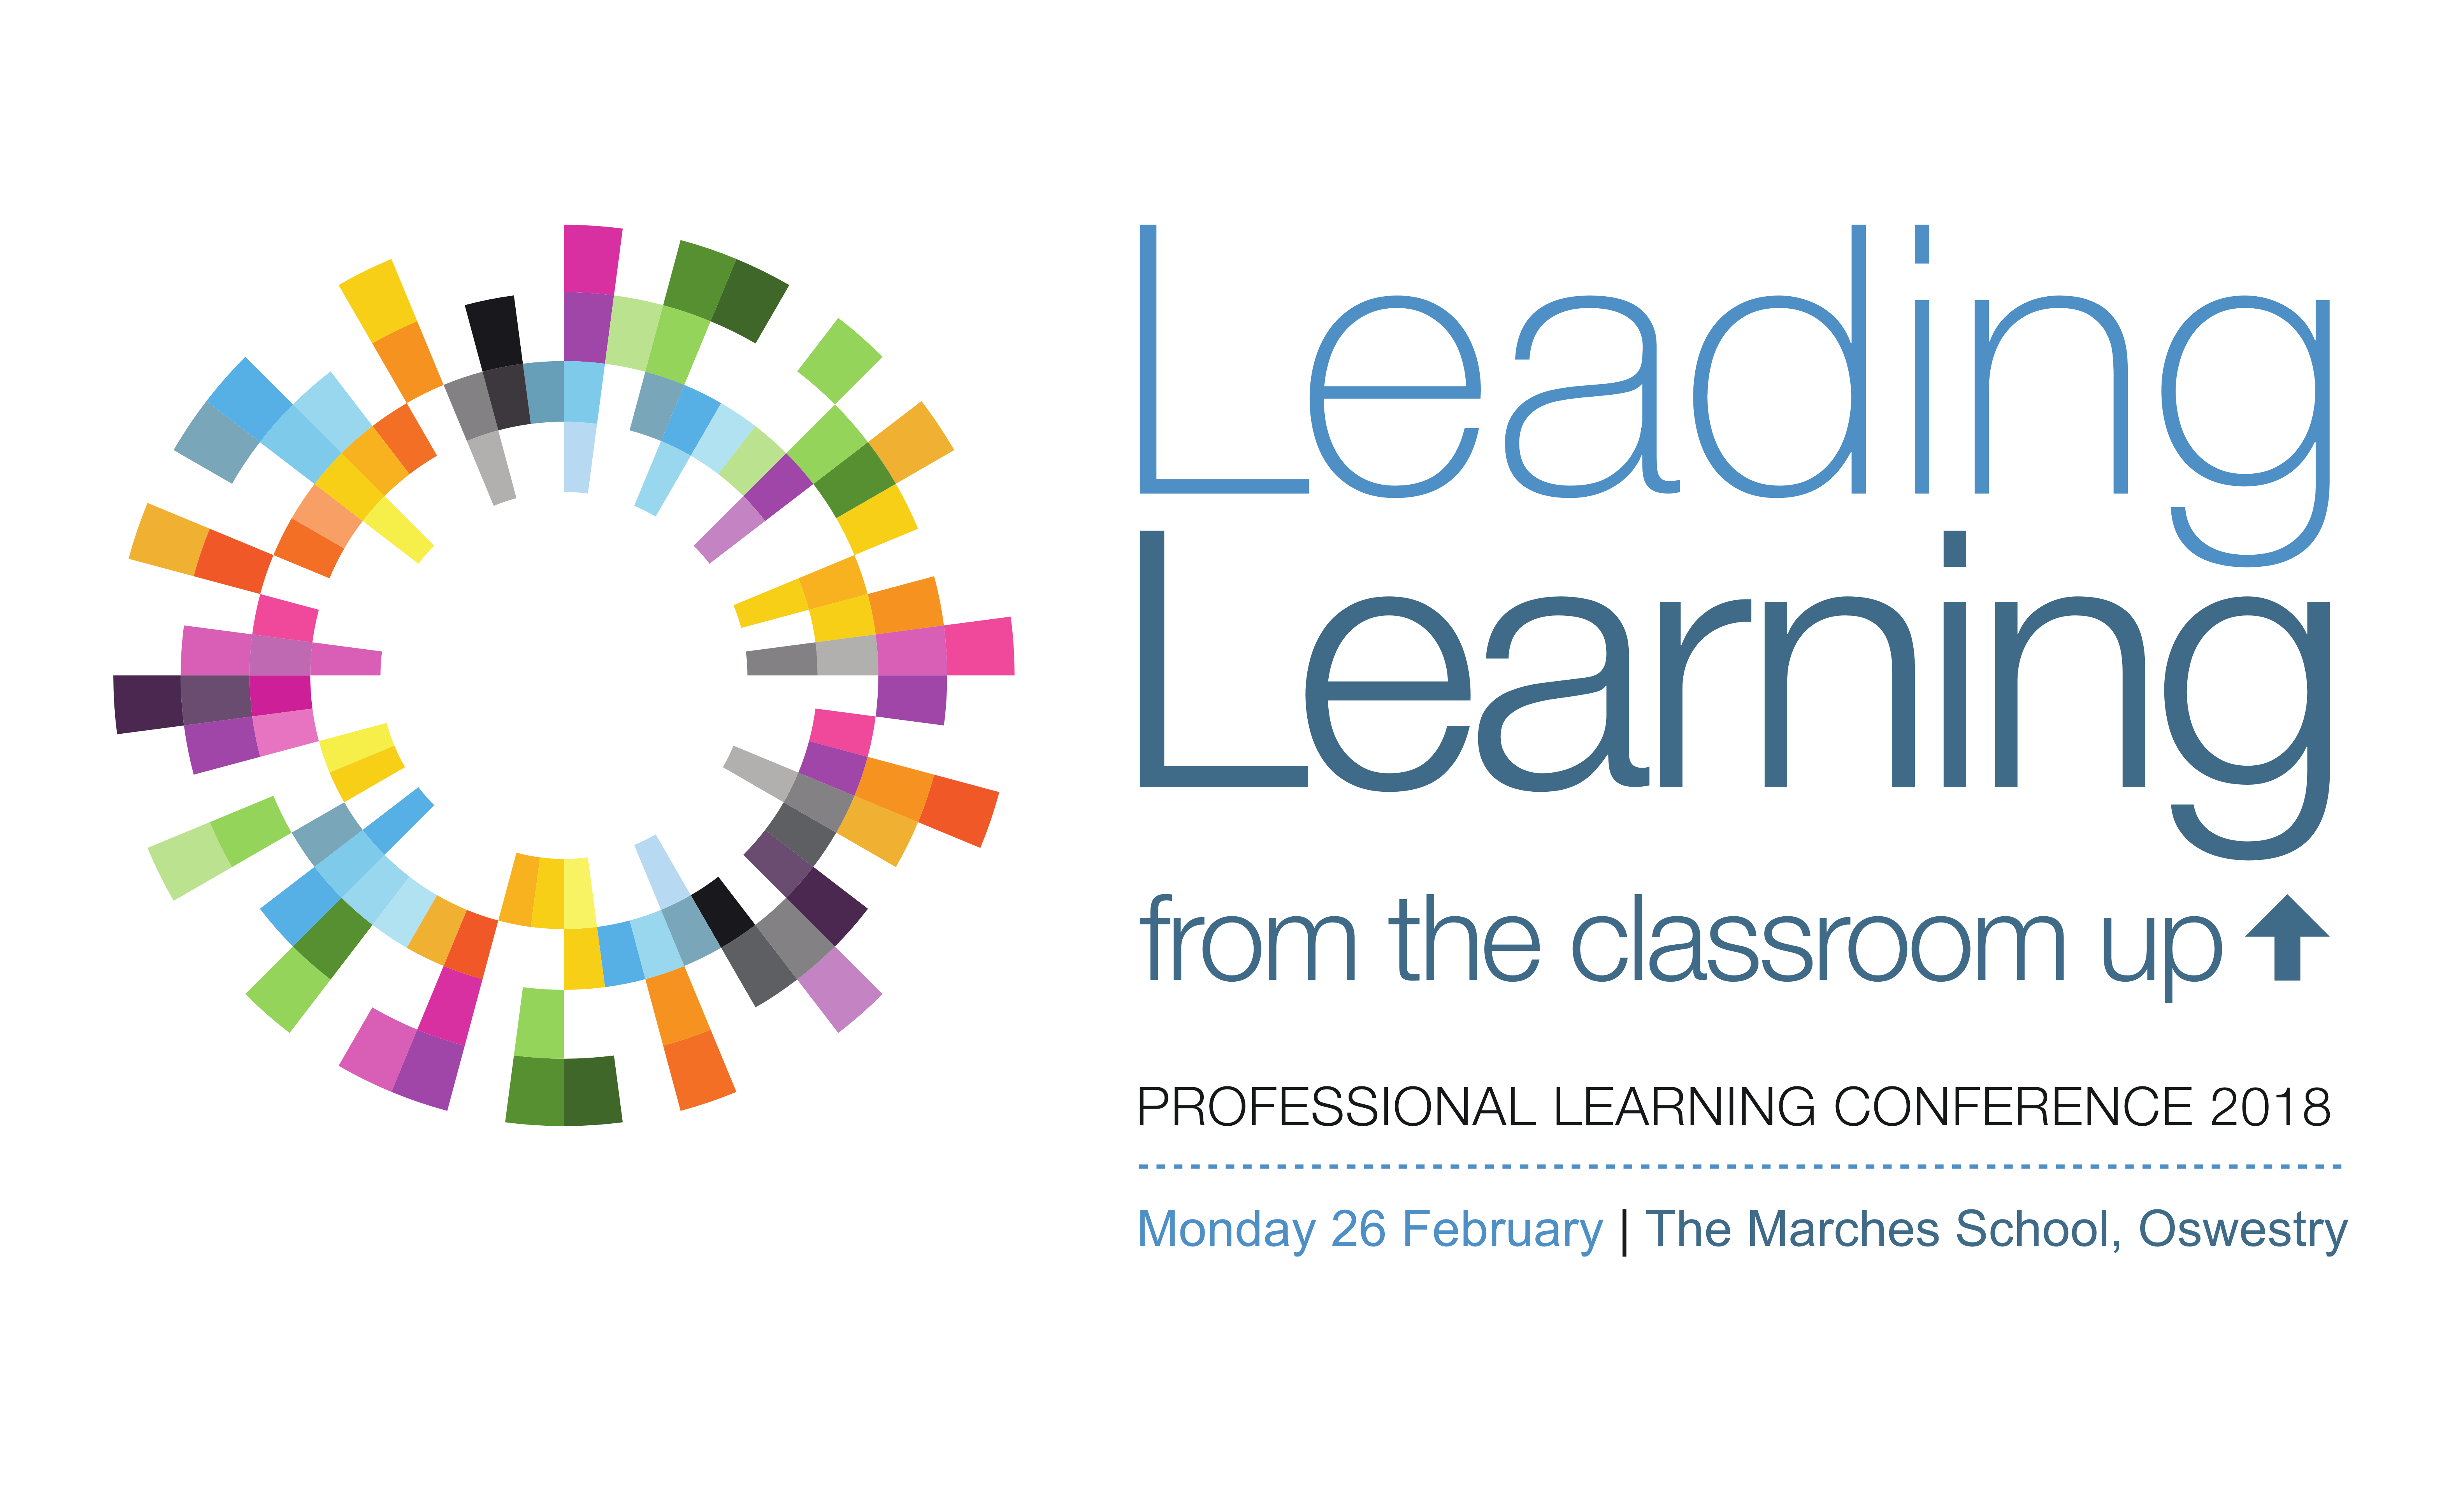 Click here to find out about the Professional Learning Conference